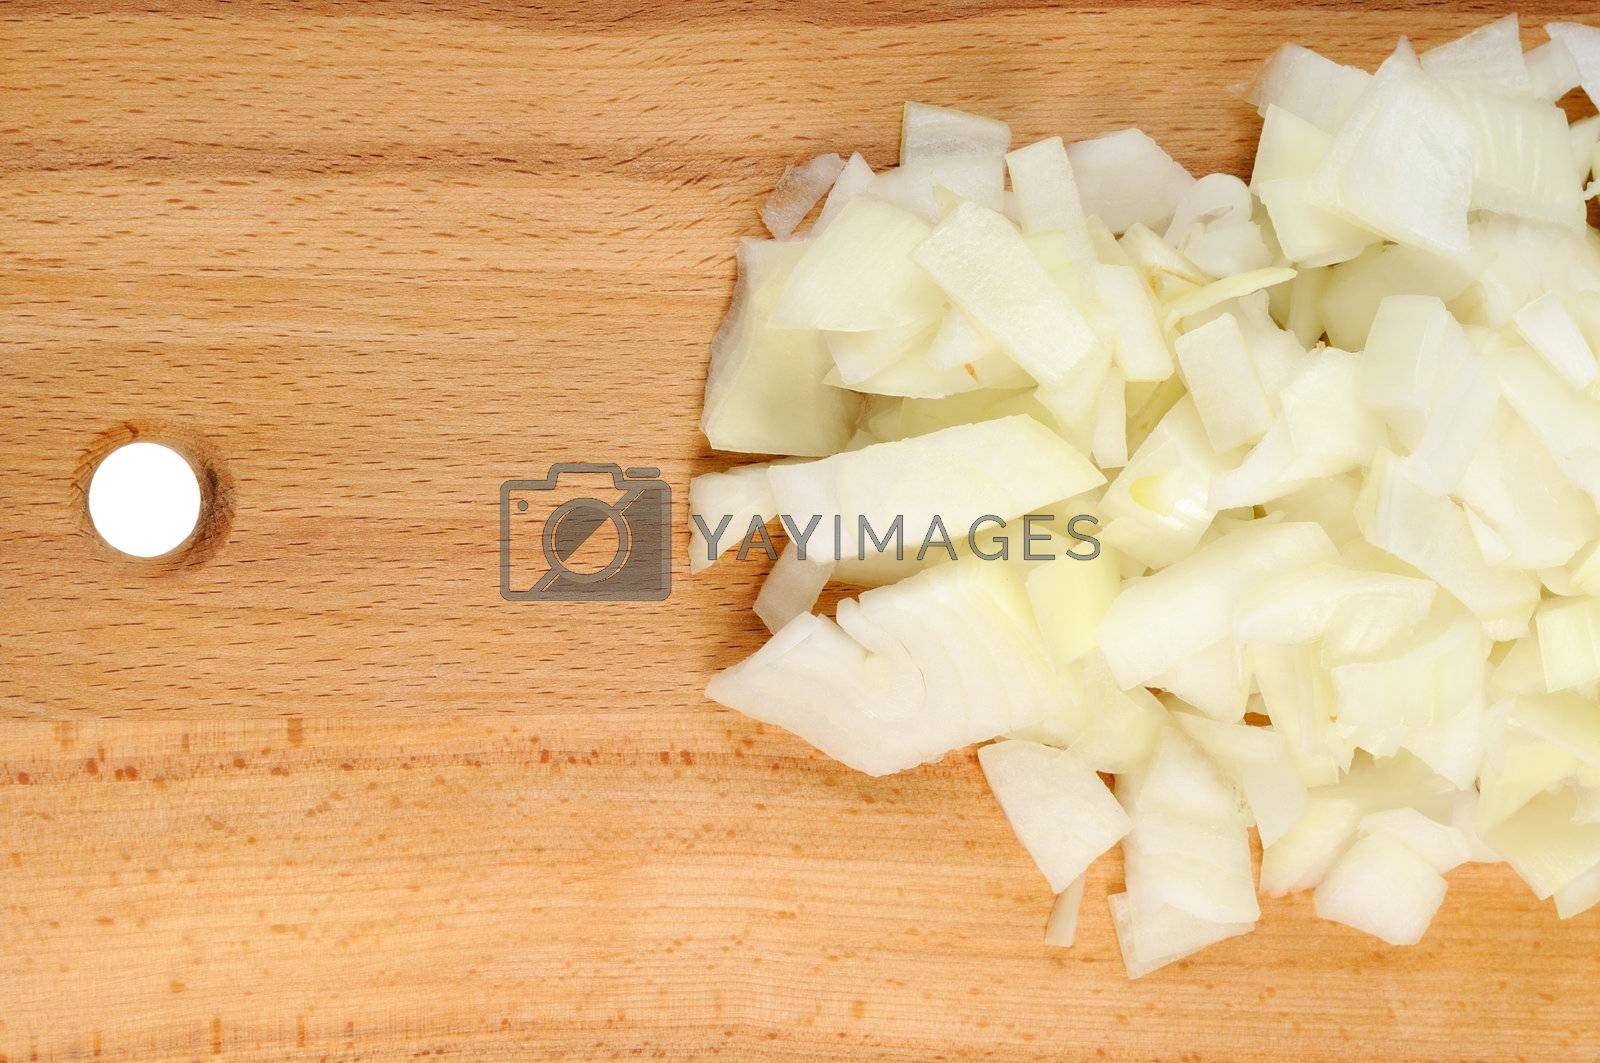 Chopped onions on a wooden board.